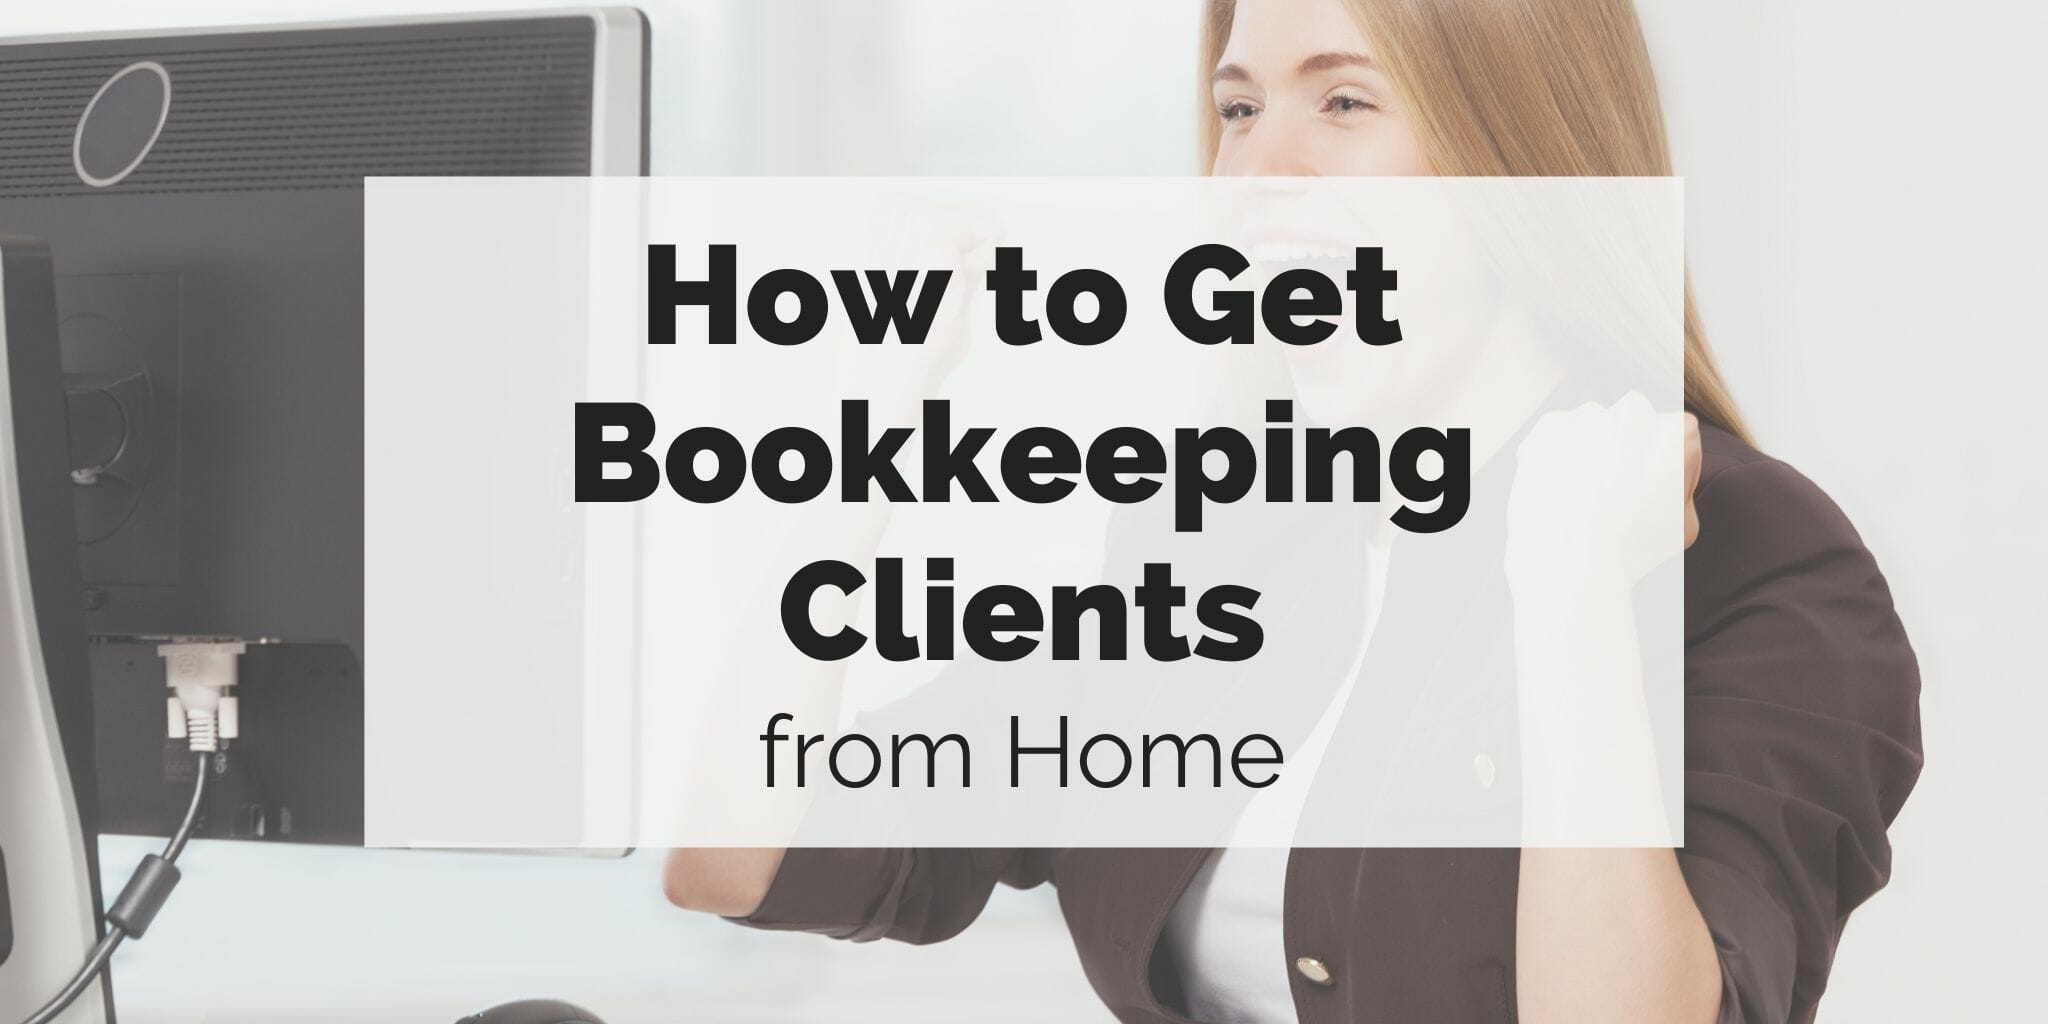 woman on her computer excited to get bookkeeping clients